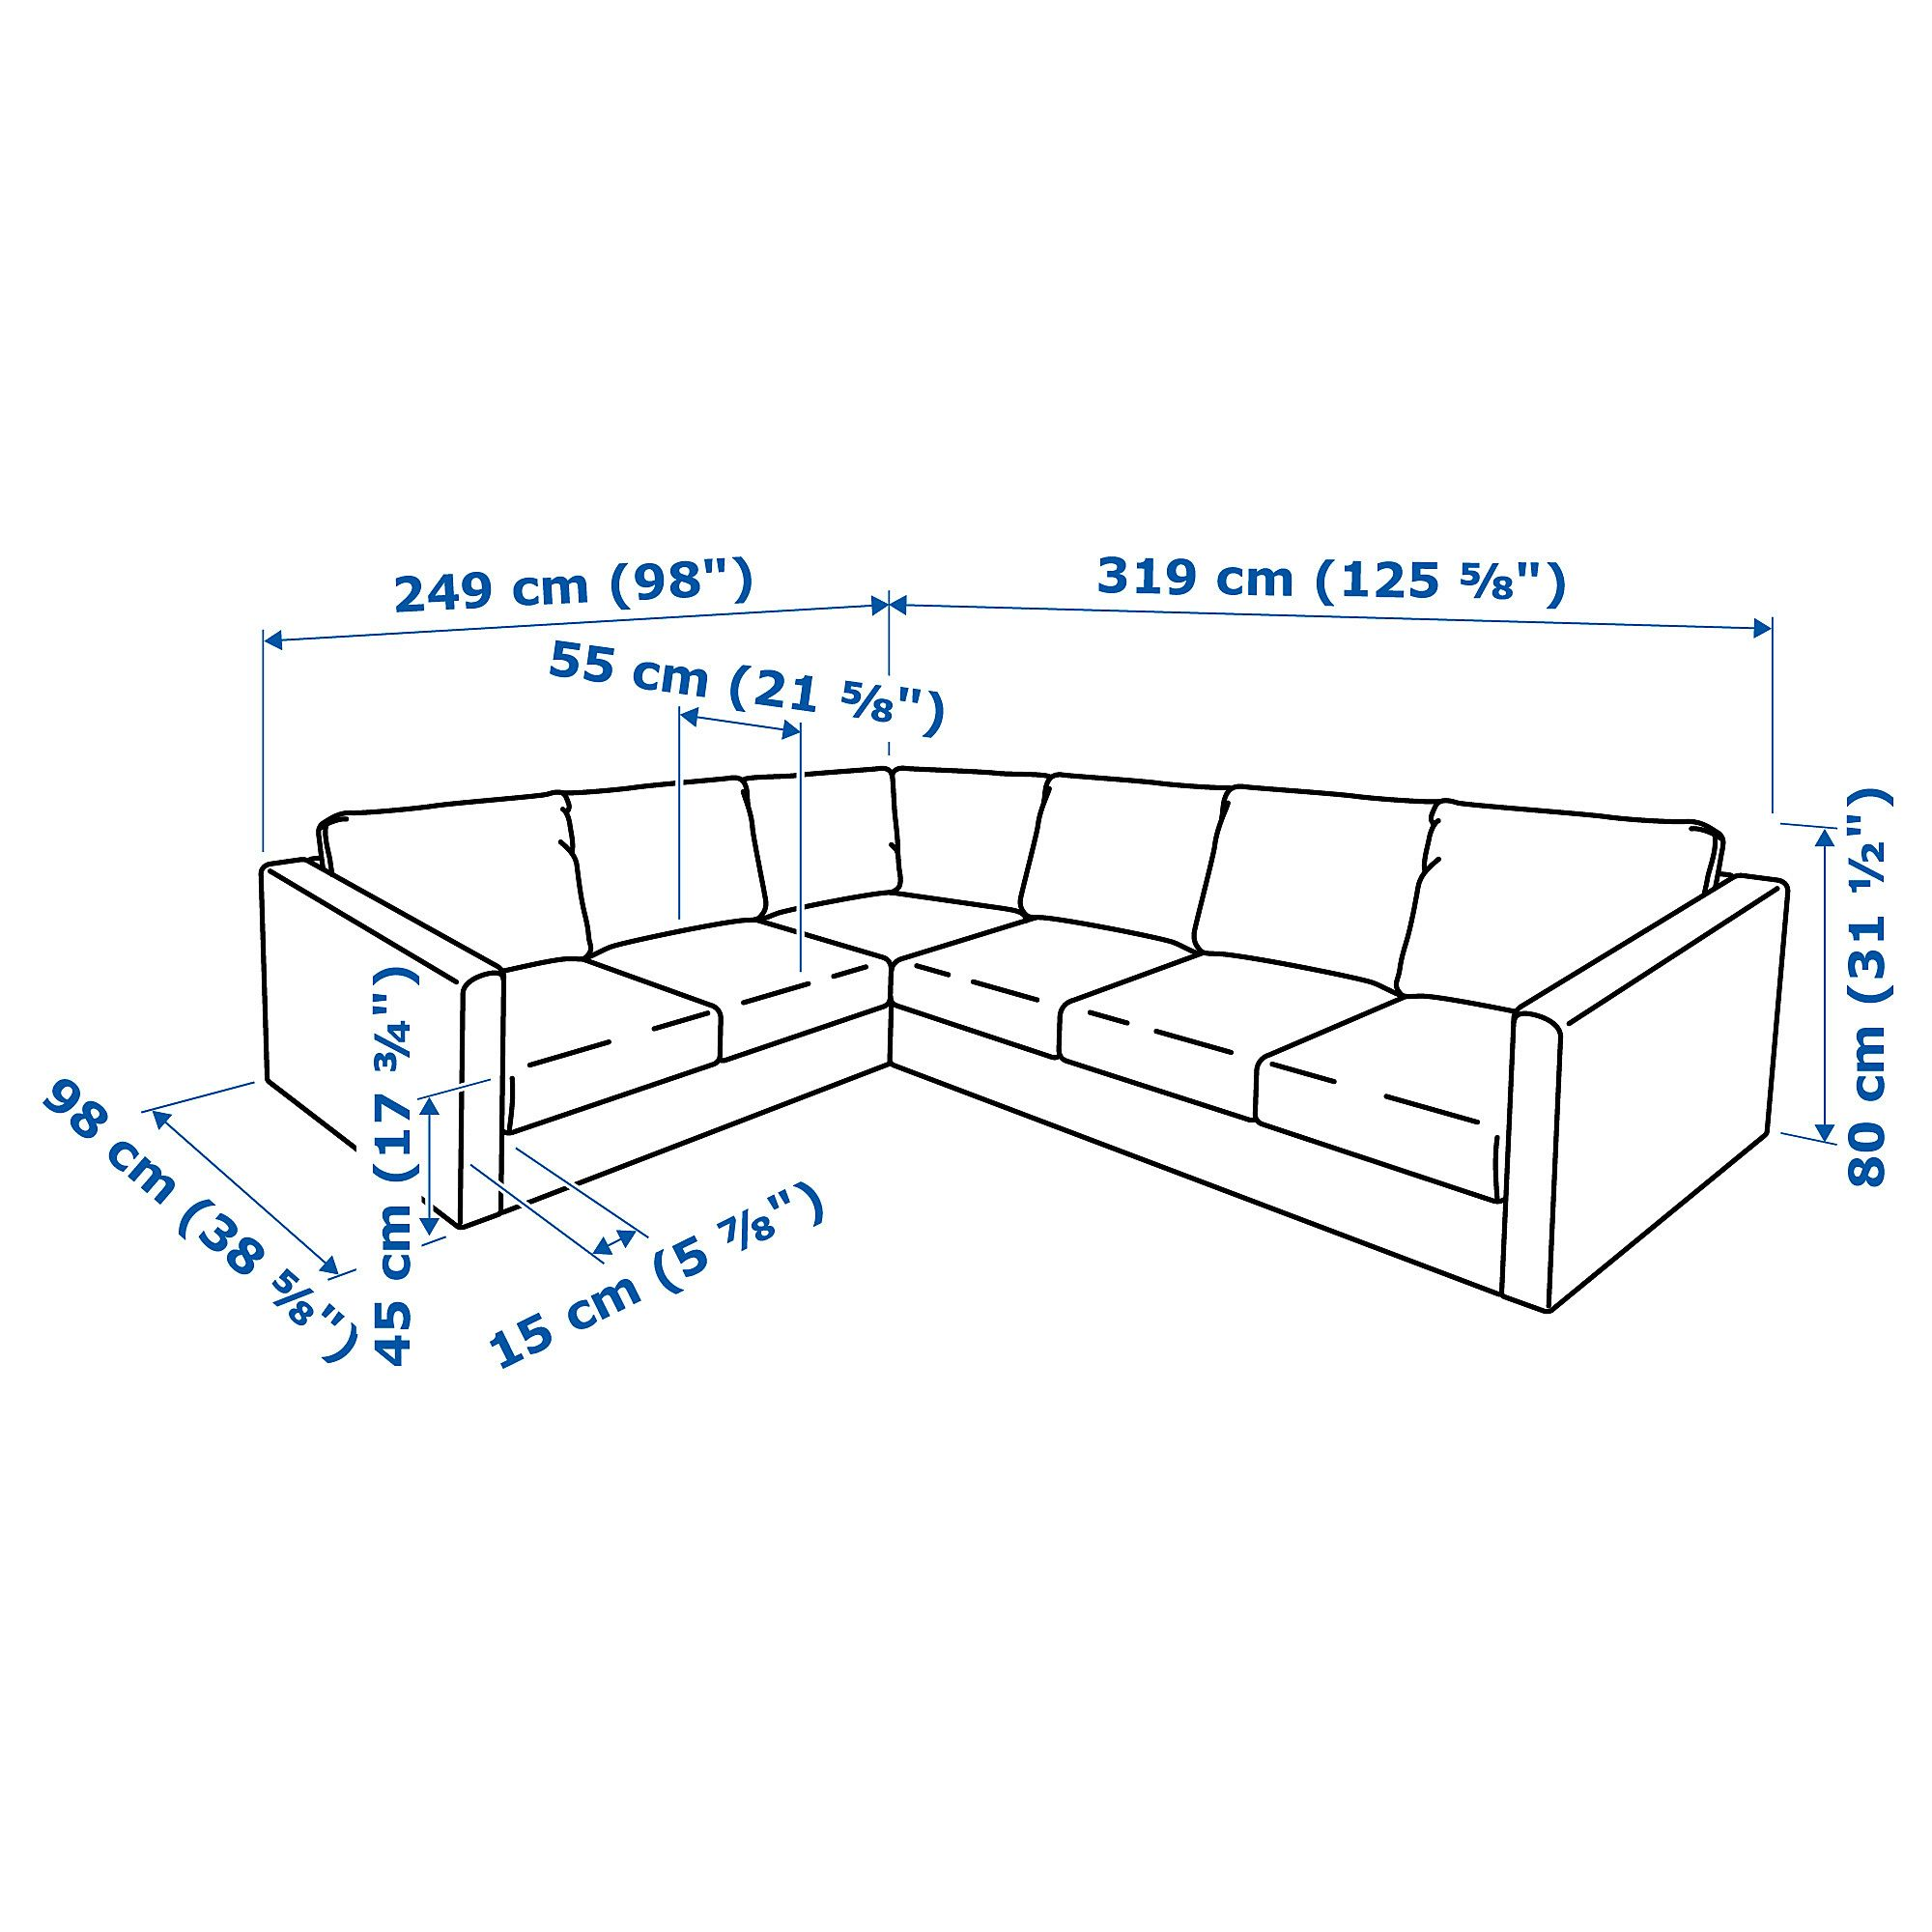 Furniture And Home Furnishings Sofa Bed With Storage Ikea Home Furnishings